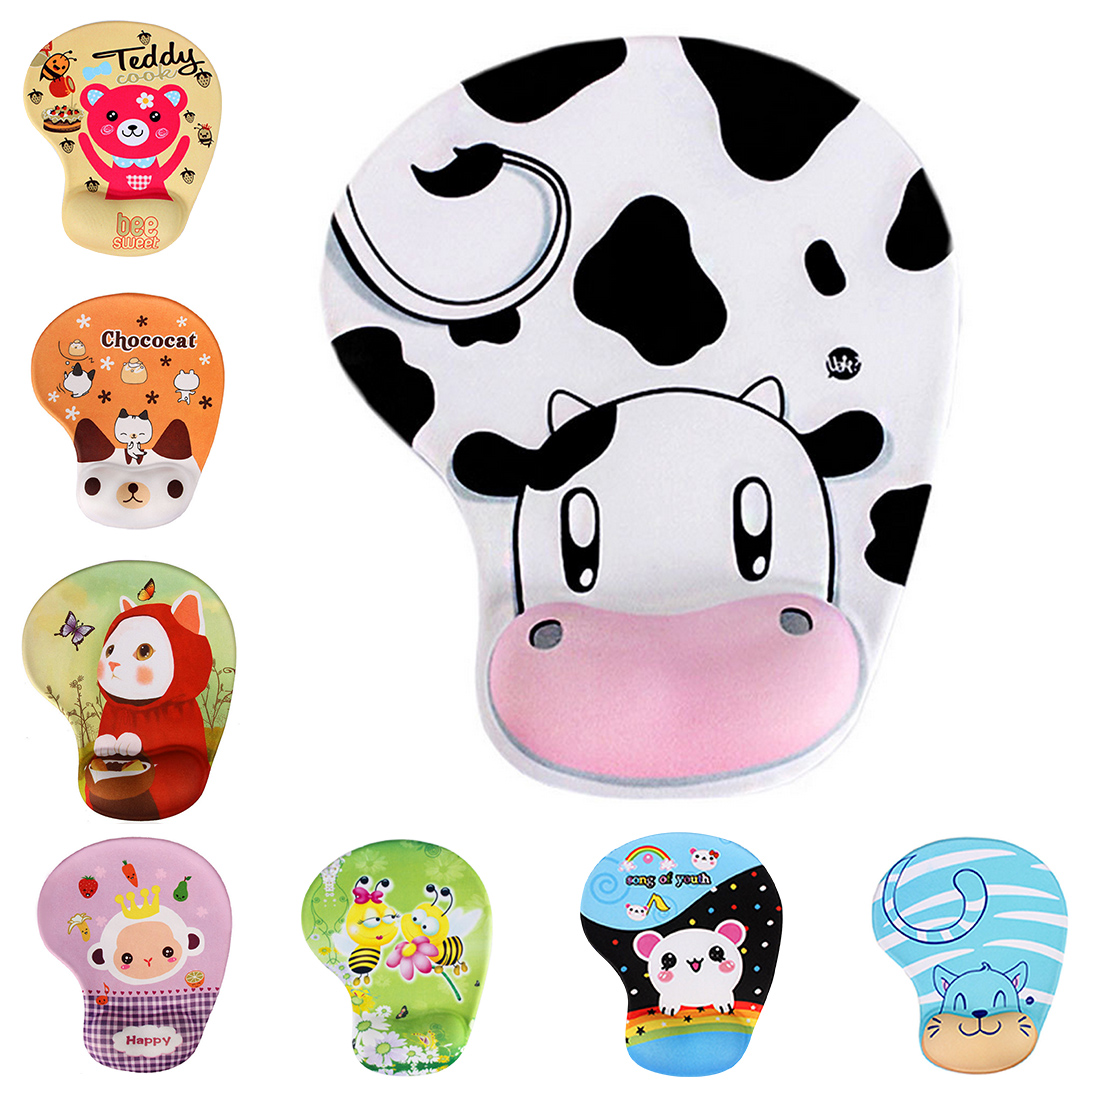 Cute Practical Skid Resistance Memory Foam Comfort Wrist Rest Support Mouse Pad Mice Pad Mousepad